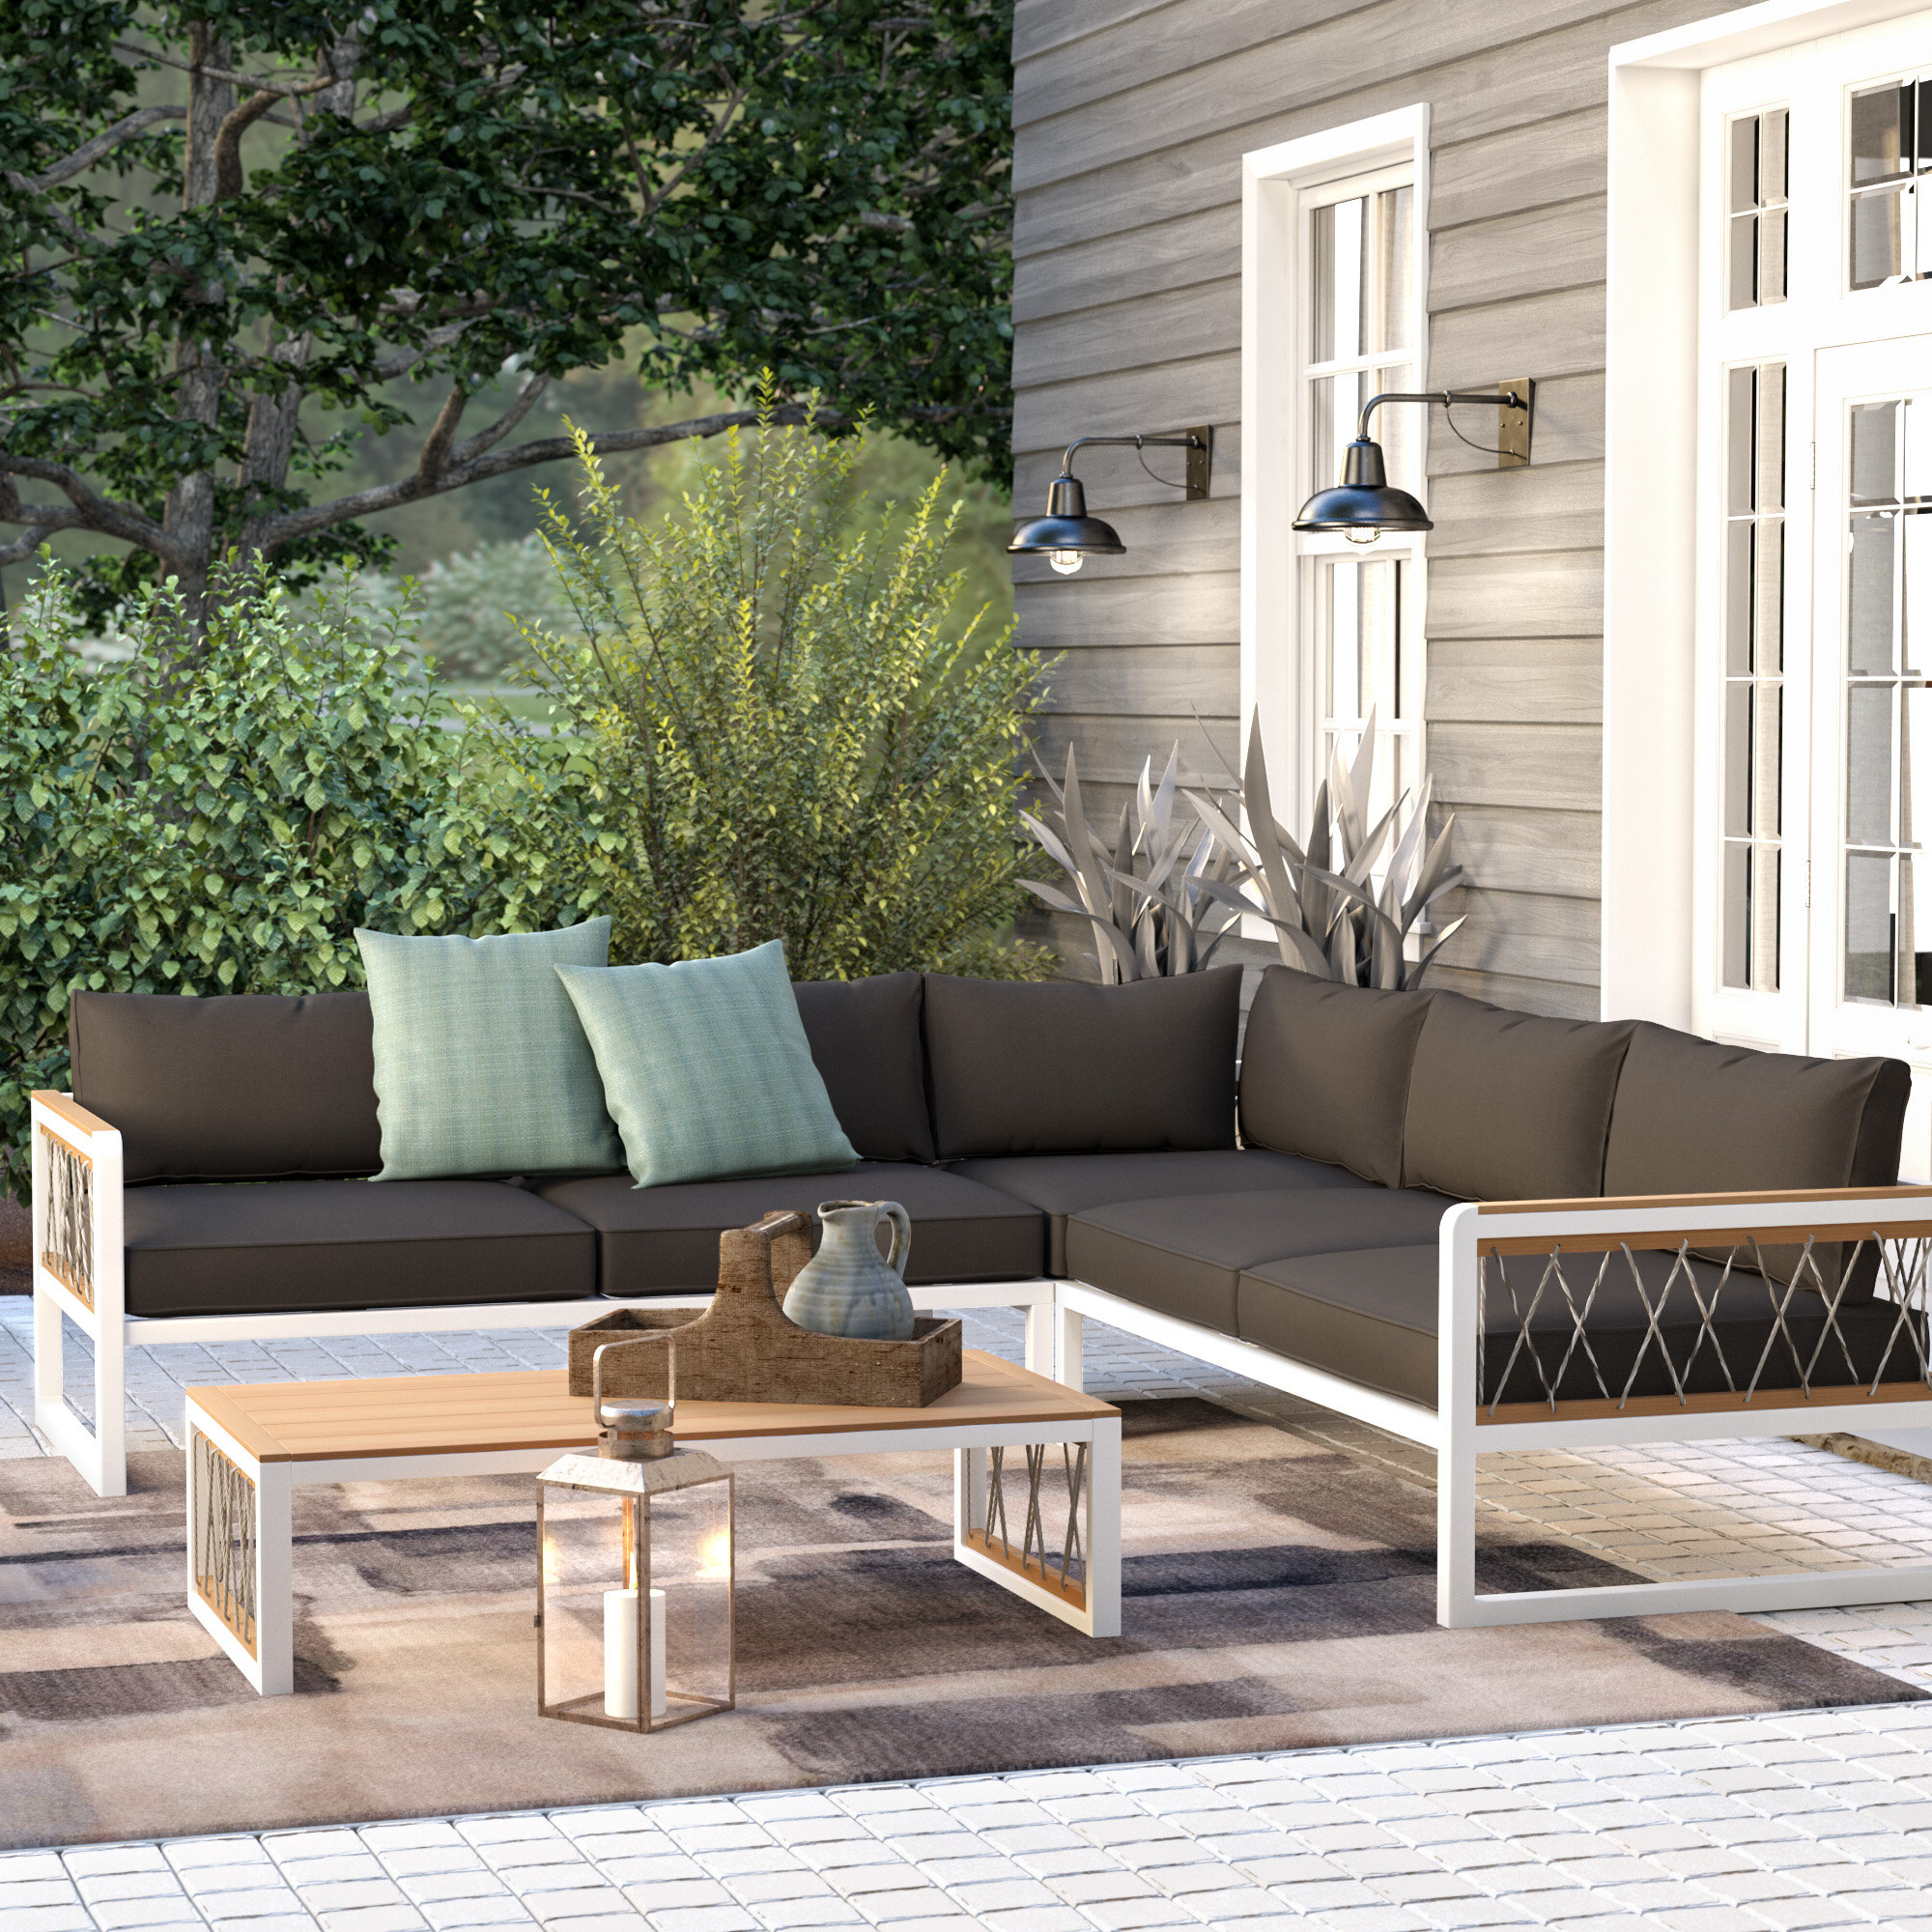 2019 Olinda 3 Piece Sectionals Seating Group With Cushions For Anoop 4 Piece Sectional Seating Group With Cushions (View 1 of 25)